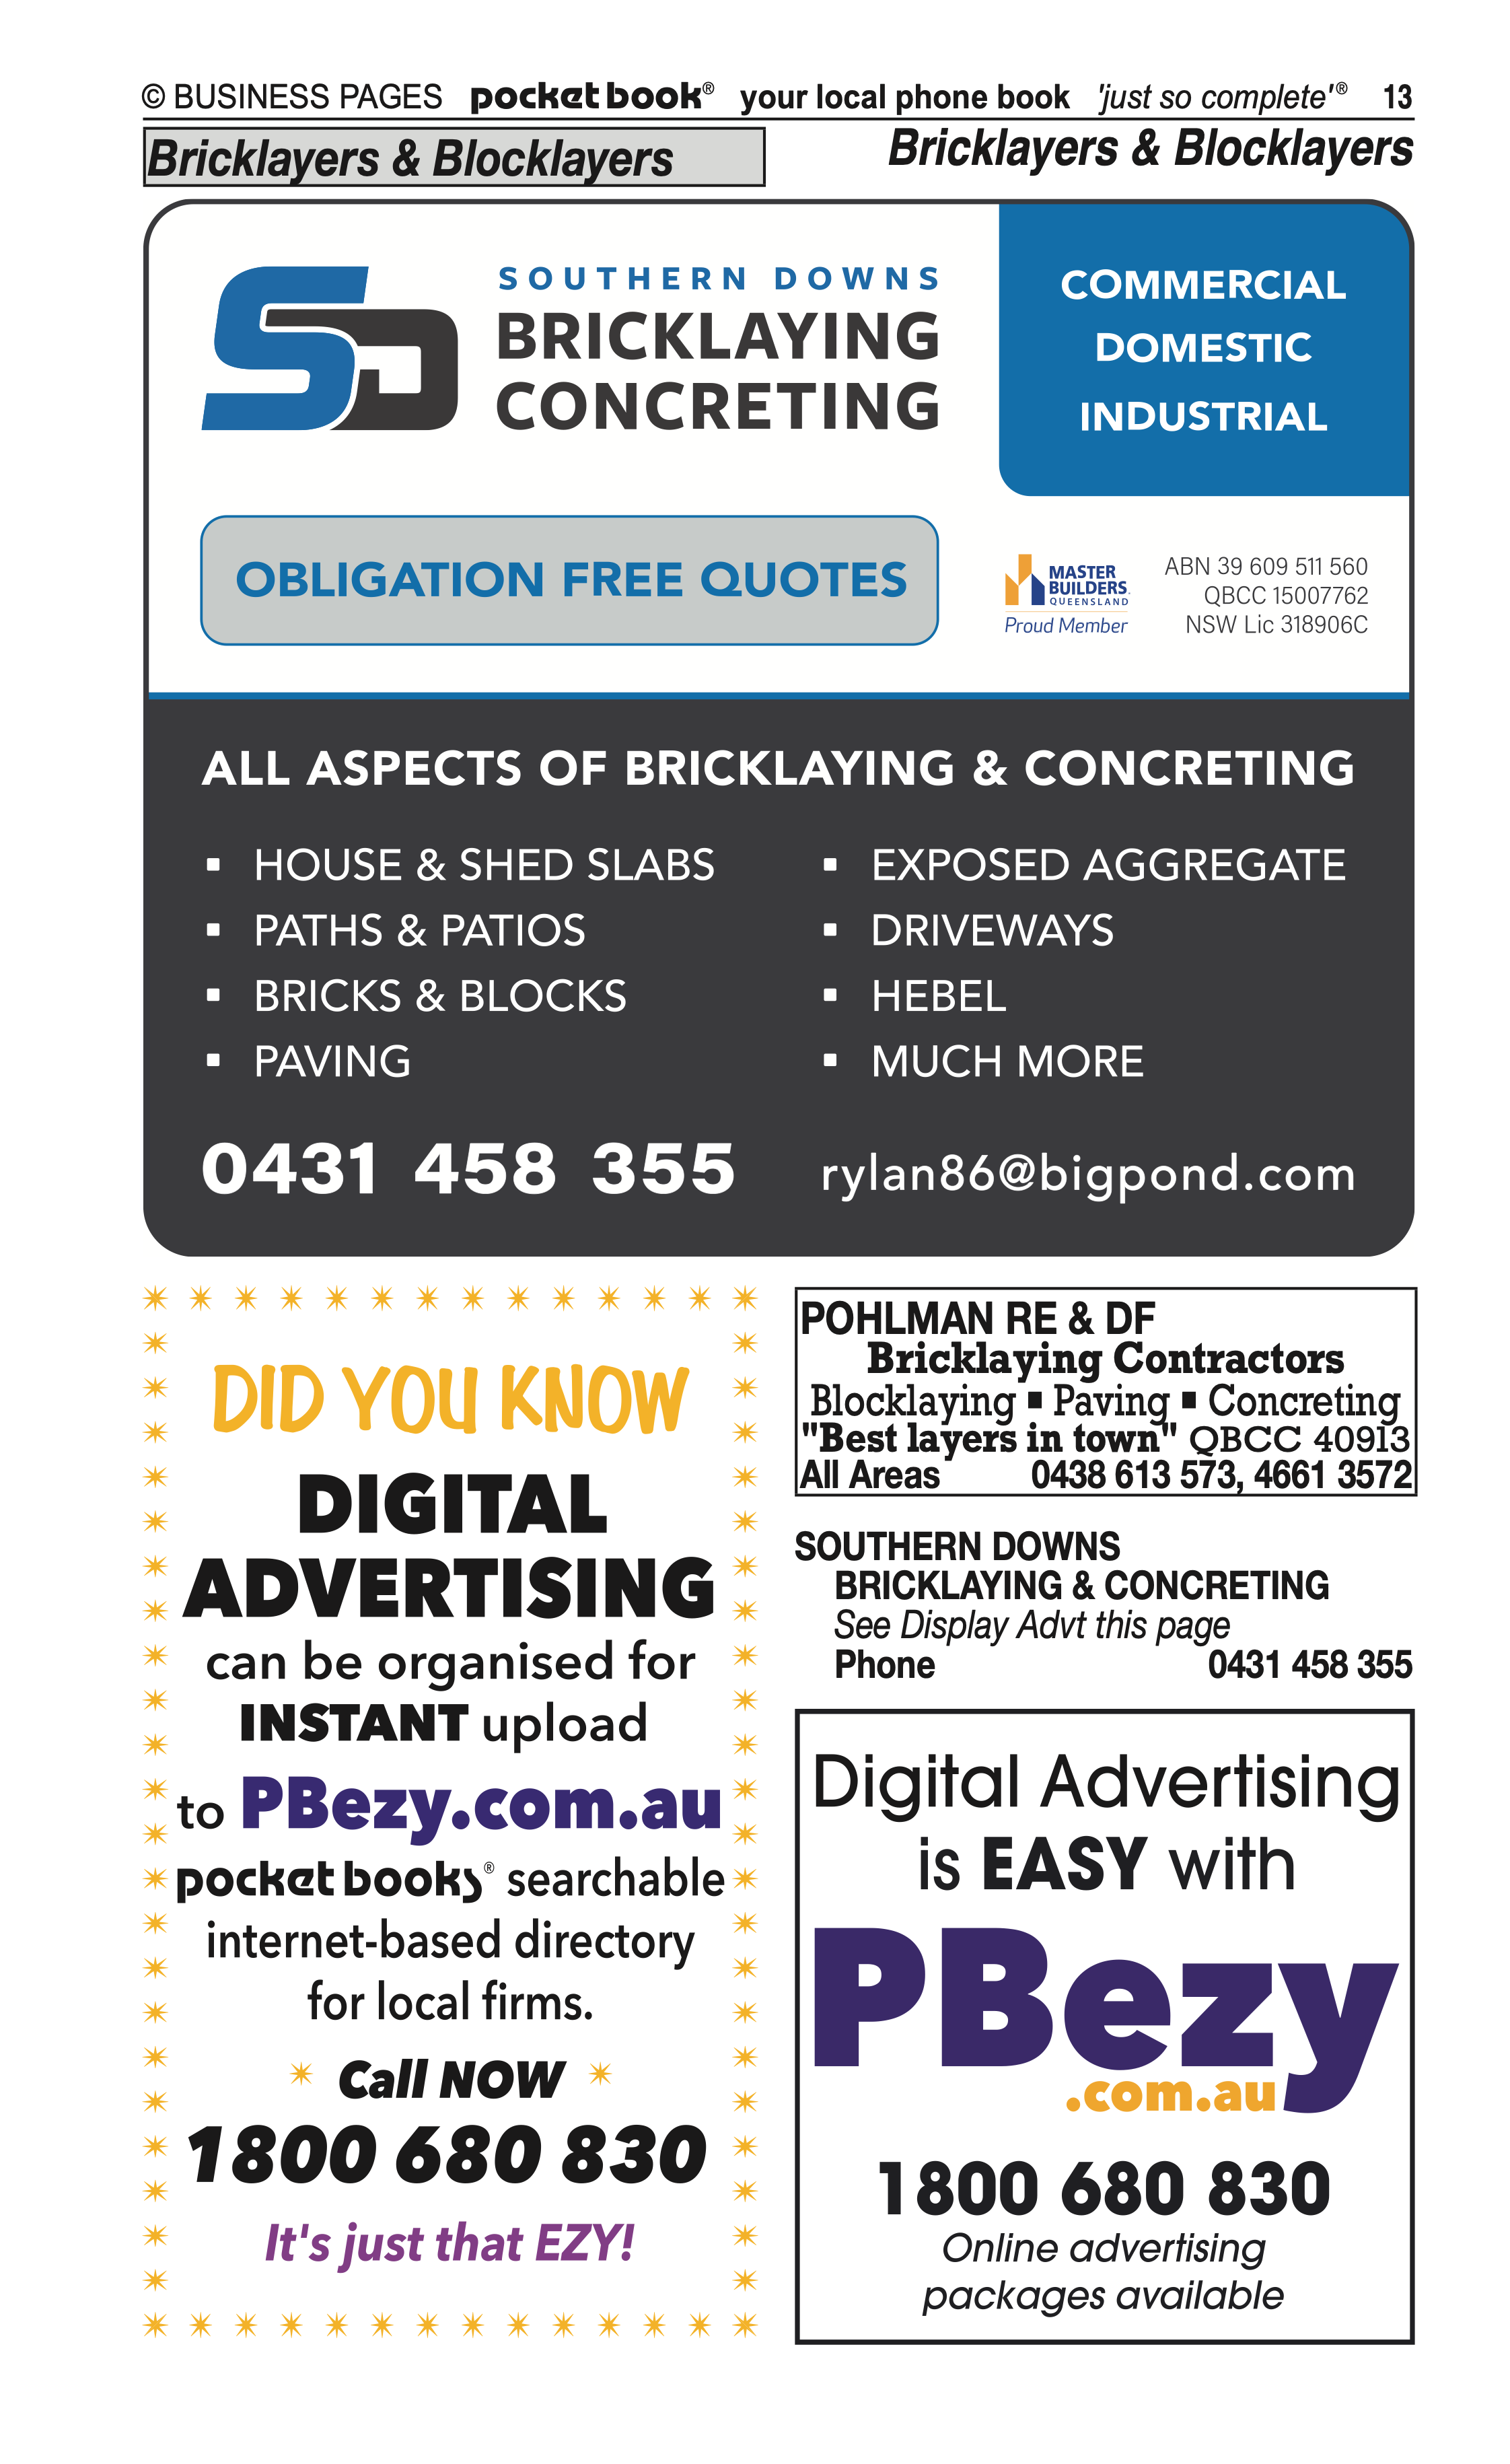 Dwan Drilling & Water Services | Boring, Drilling in Allora | PBezy Pocket Books local directories - page 13